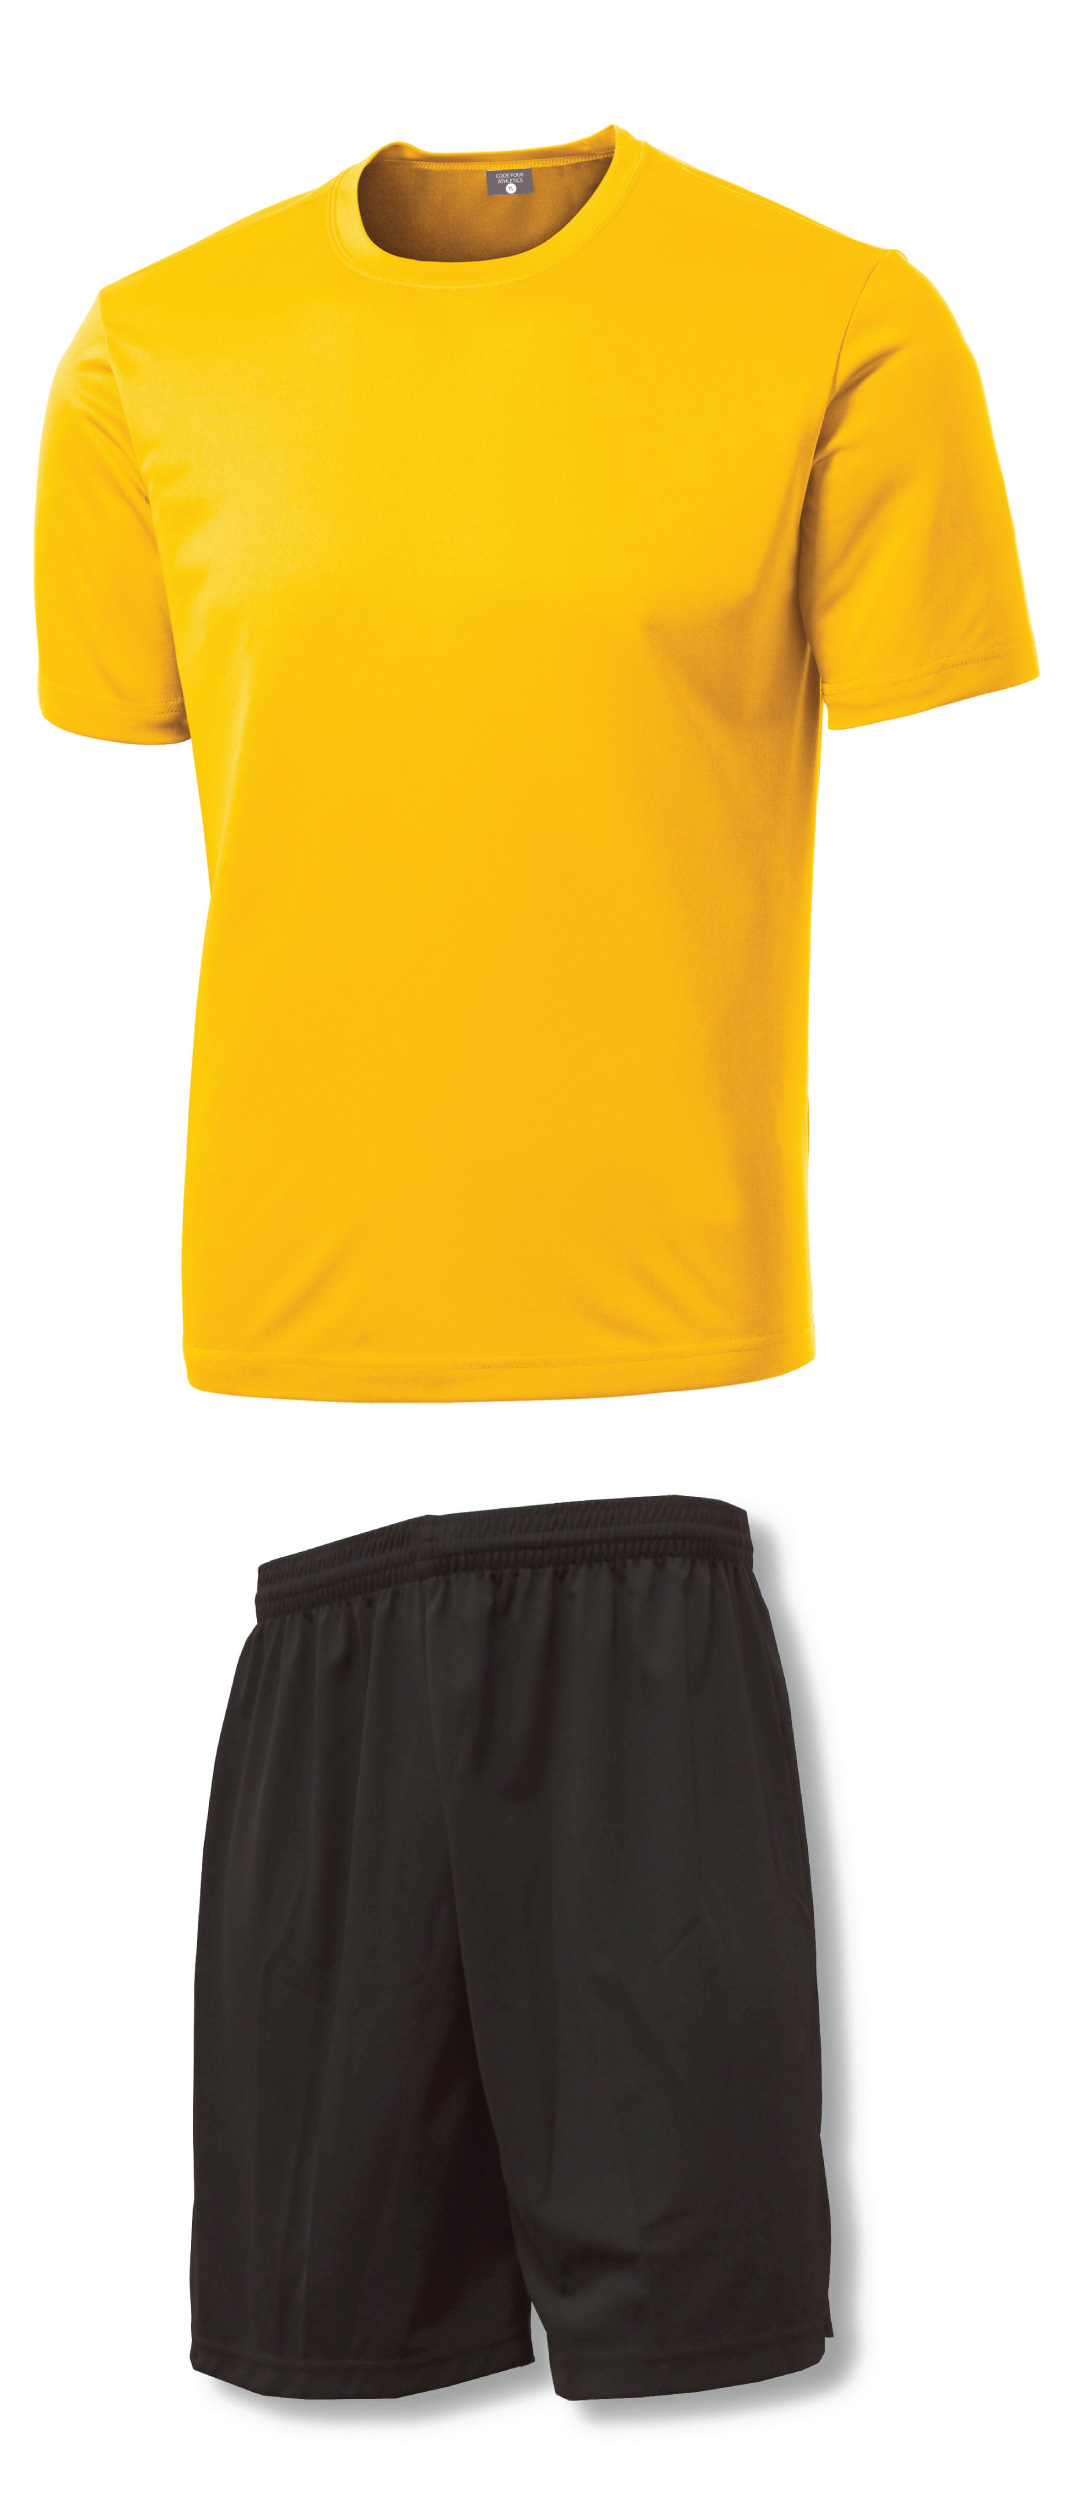 Soccer Uniform Training Kit with gold jersey and shorts by Code Four Athletics